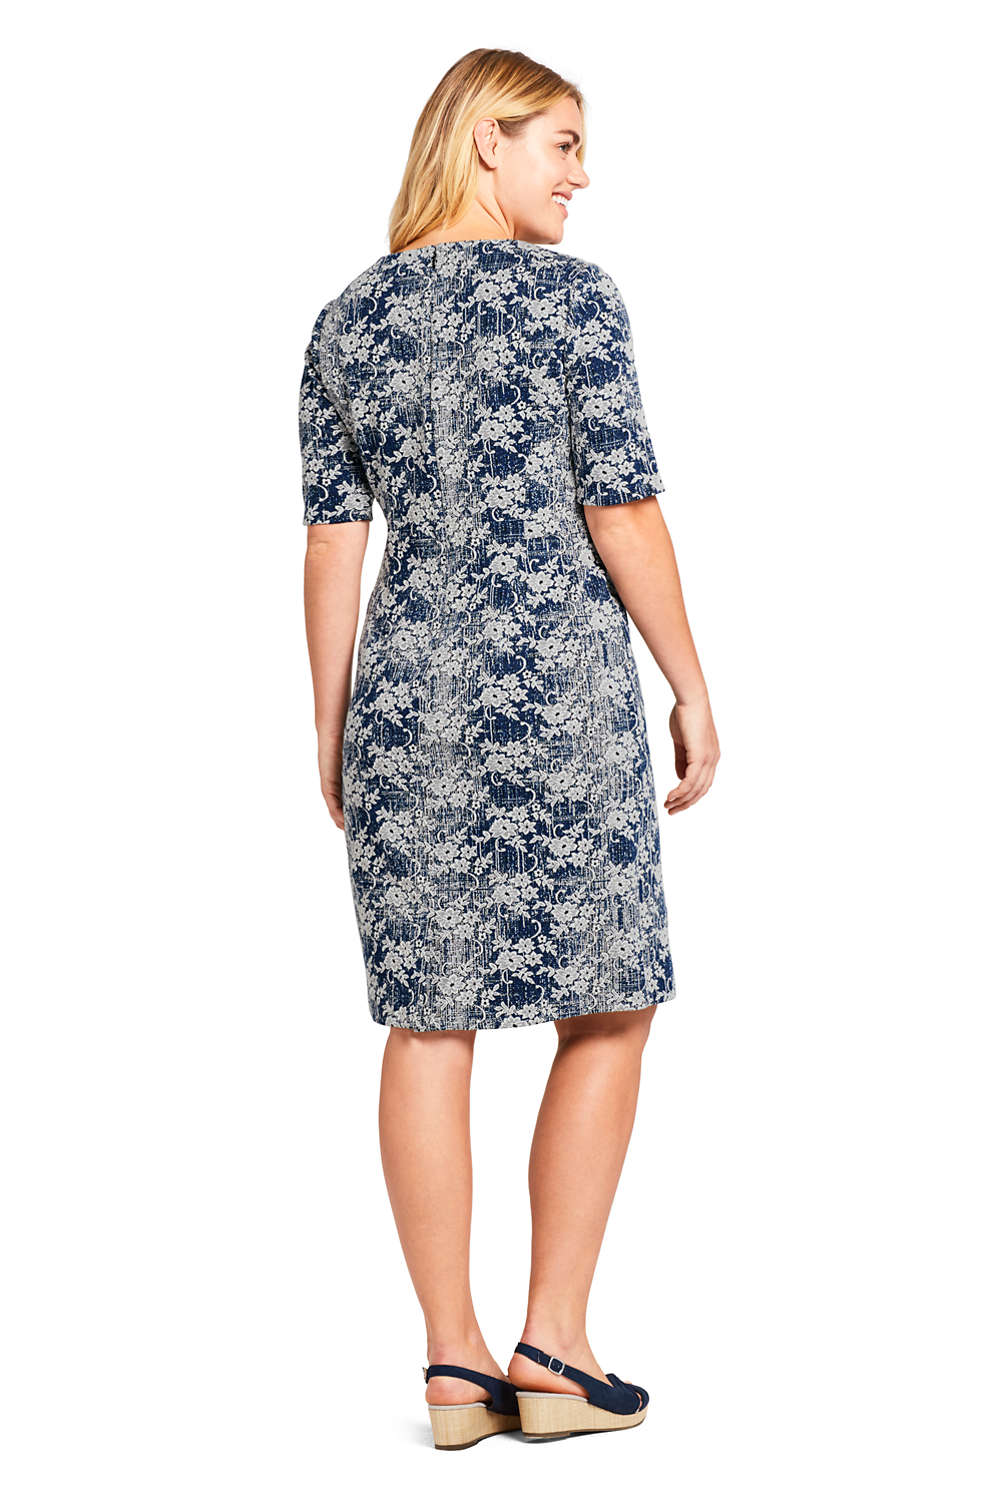 e1f62762 Women's Plus Size Elbow Sleeve Jacquard Ponte Sheath Dress from ...